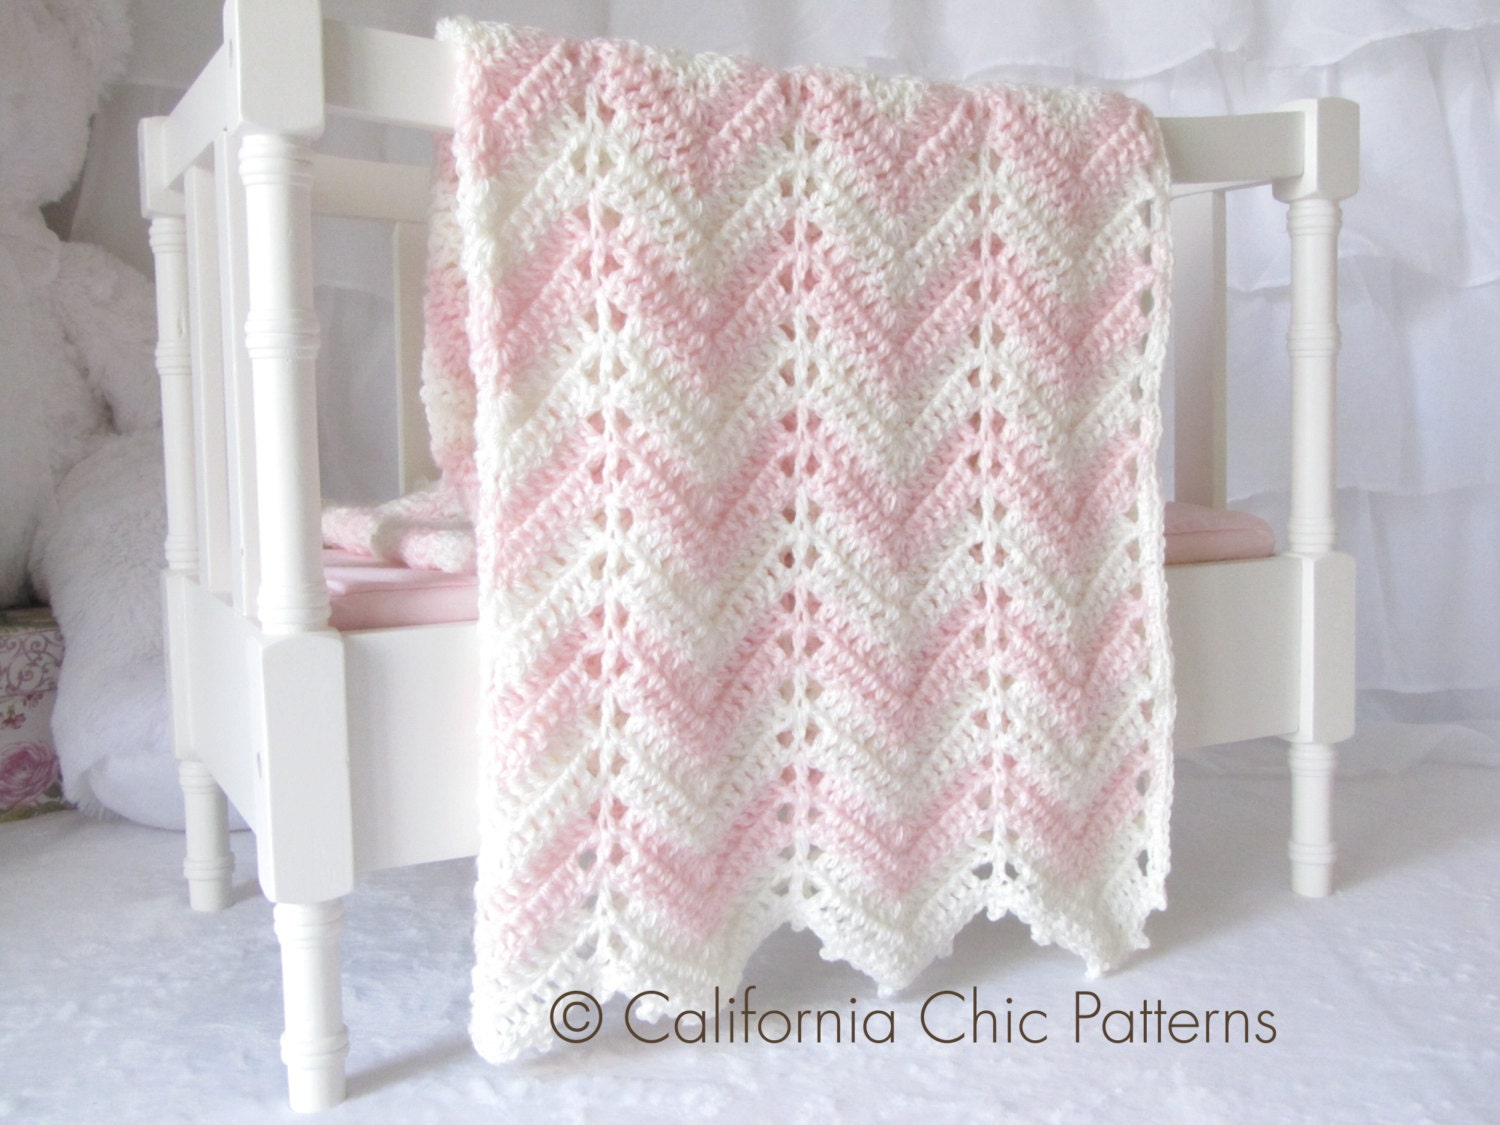 Easy Knitting Patterns For Throw Rugs : Crochet Baby Blanket PATTERN 55 - Chevron Series - Easy Crochet Blanket PATTE...